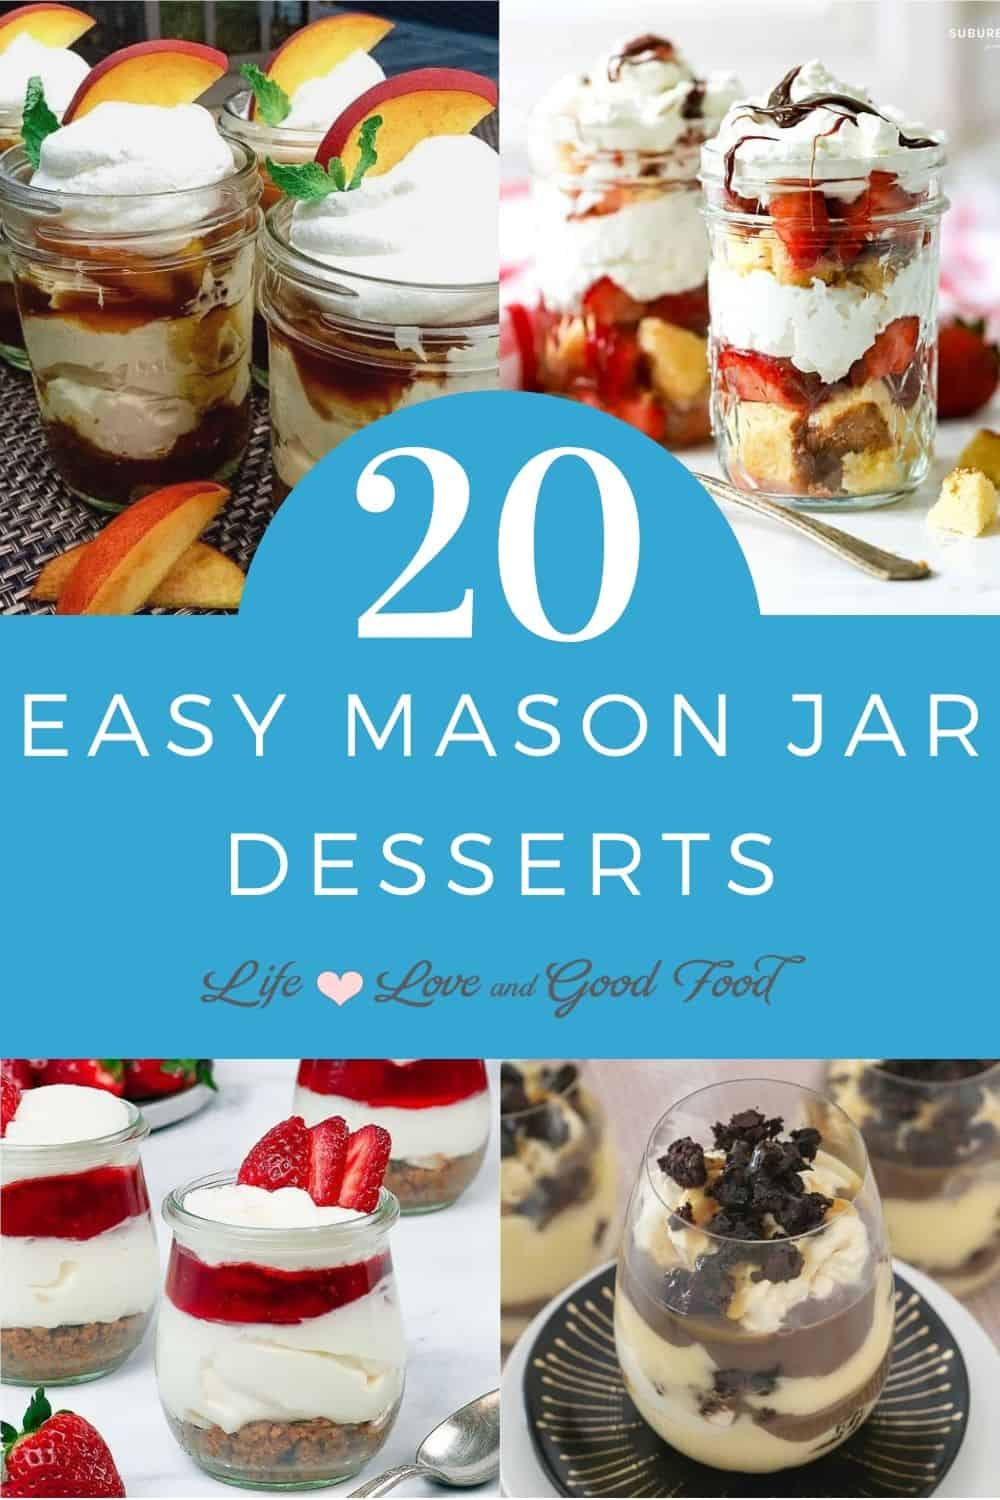 This list of 20 Mason Jar Desserts recipes includes delicious make-ahead individual desserts with plenty of delicious options for indoor or outdoor events—just stash them in a cooler for easy serving. You'll find cheesecakes, decadent brownies, mousse, trifles, icebox cakes, and many more. You'll have a hard time deciding which one to try first!